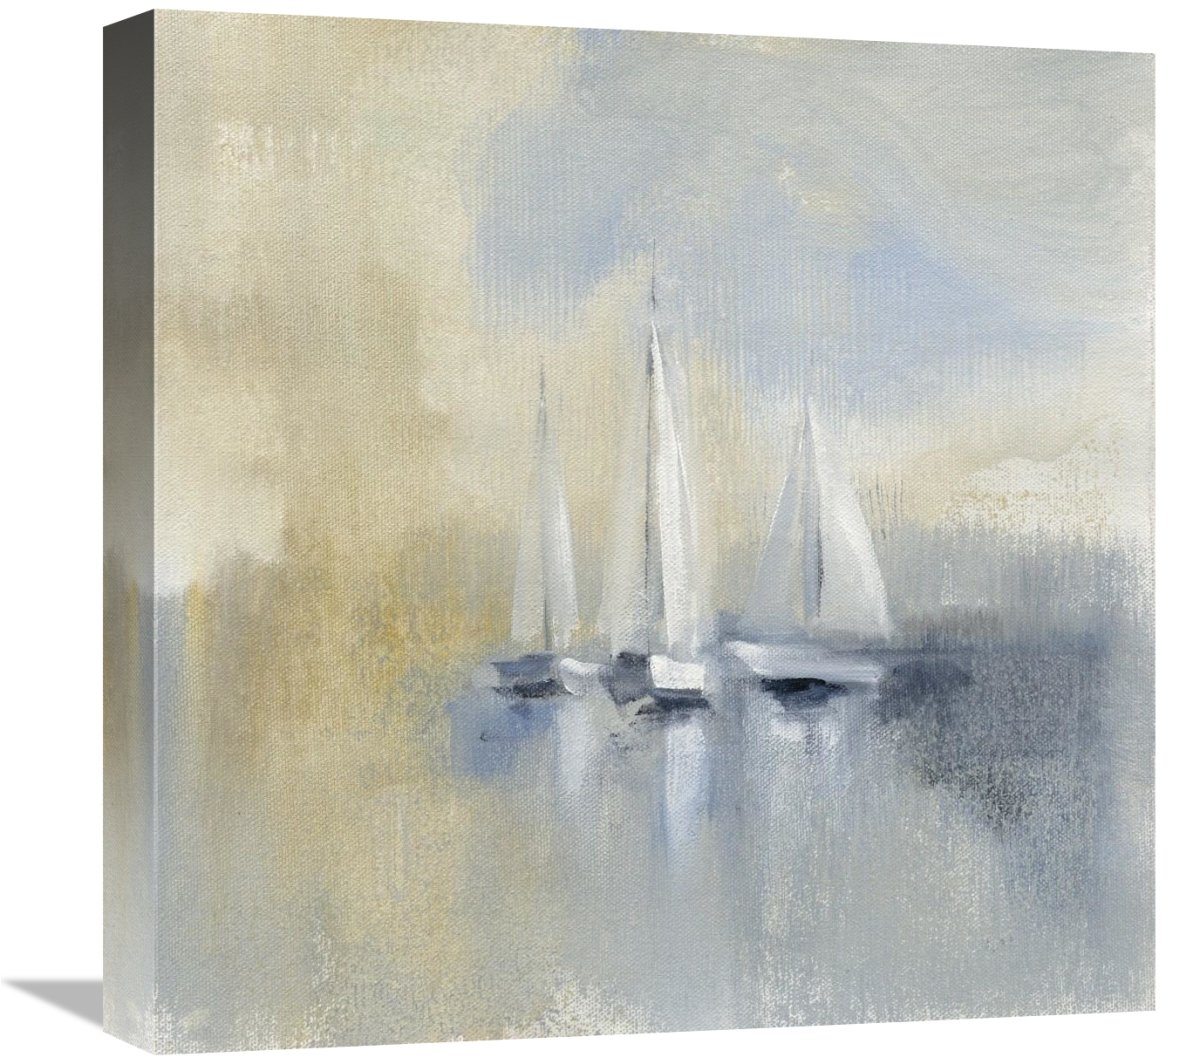 Global Gallery Sue Schlabach Giclee Stretched Canvas Artwork 18 x 18